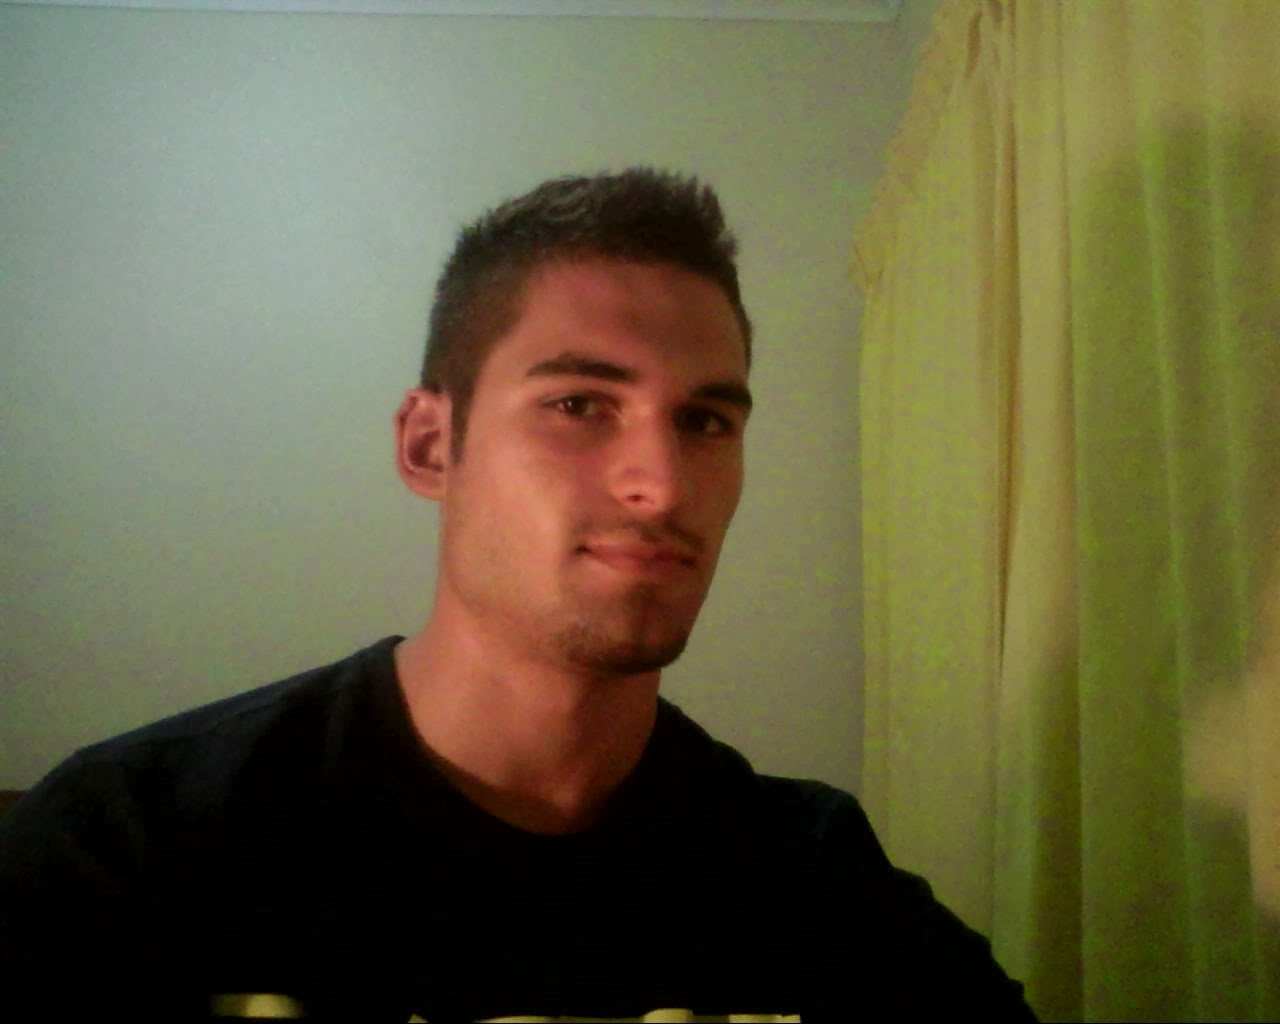 Dating Cafe: Marcel Gouws, single man (18 yo) looking for